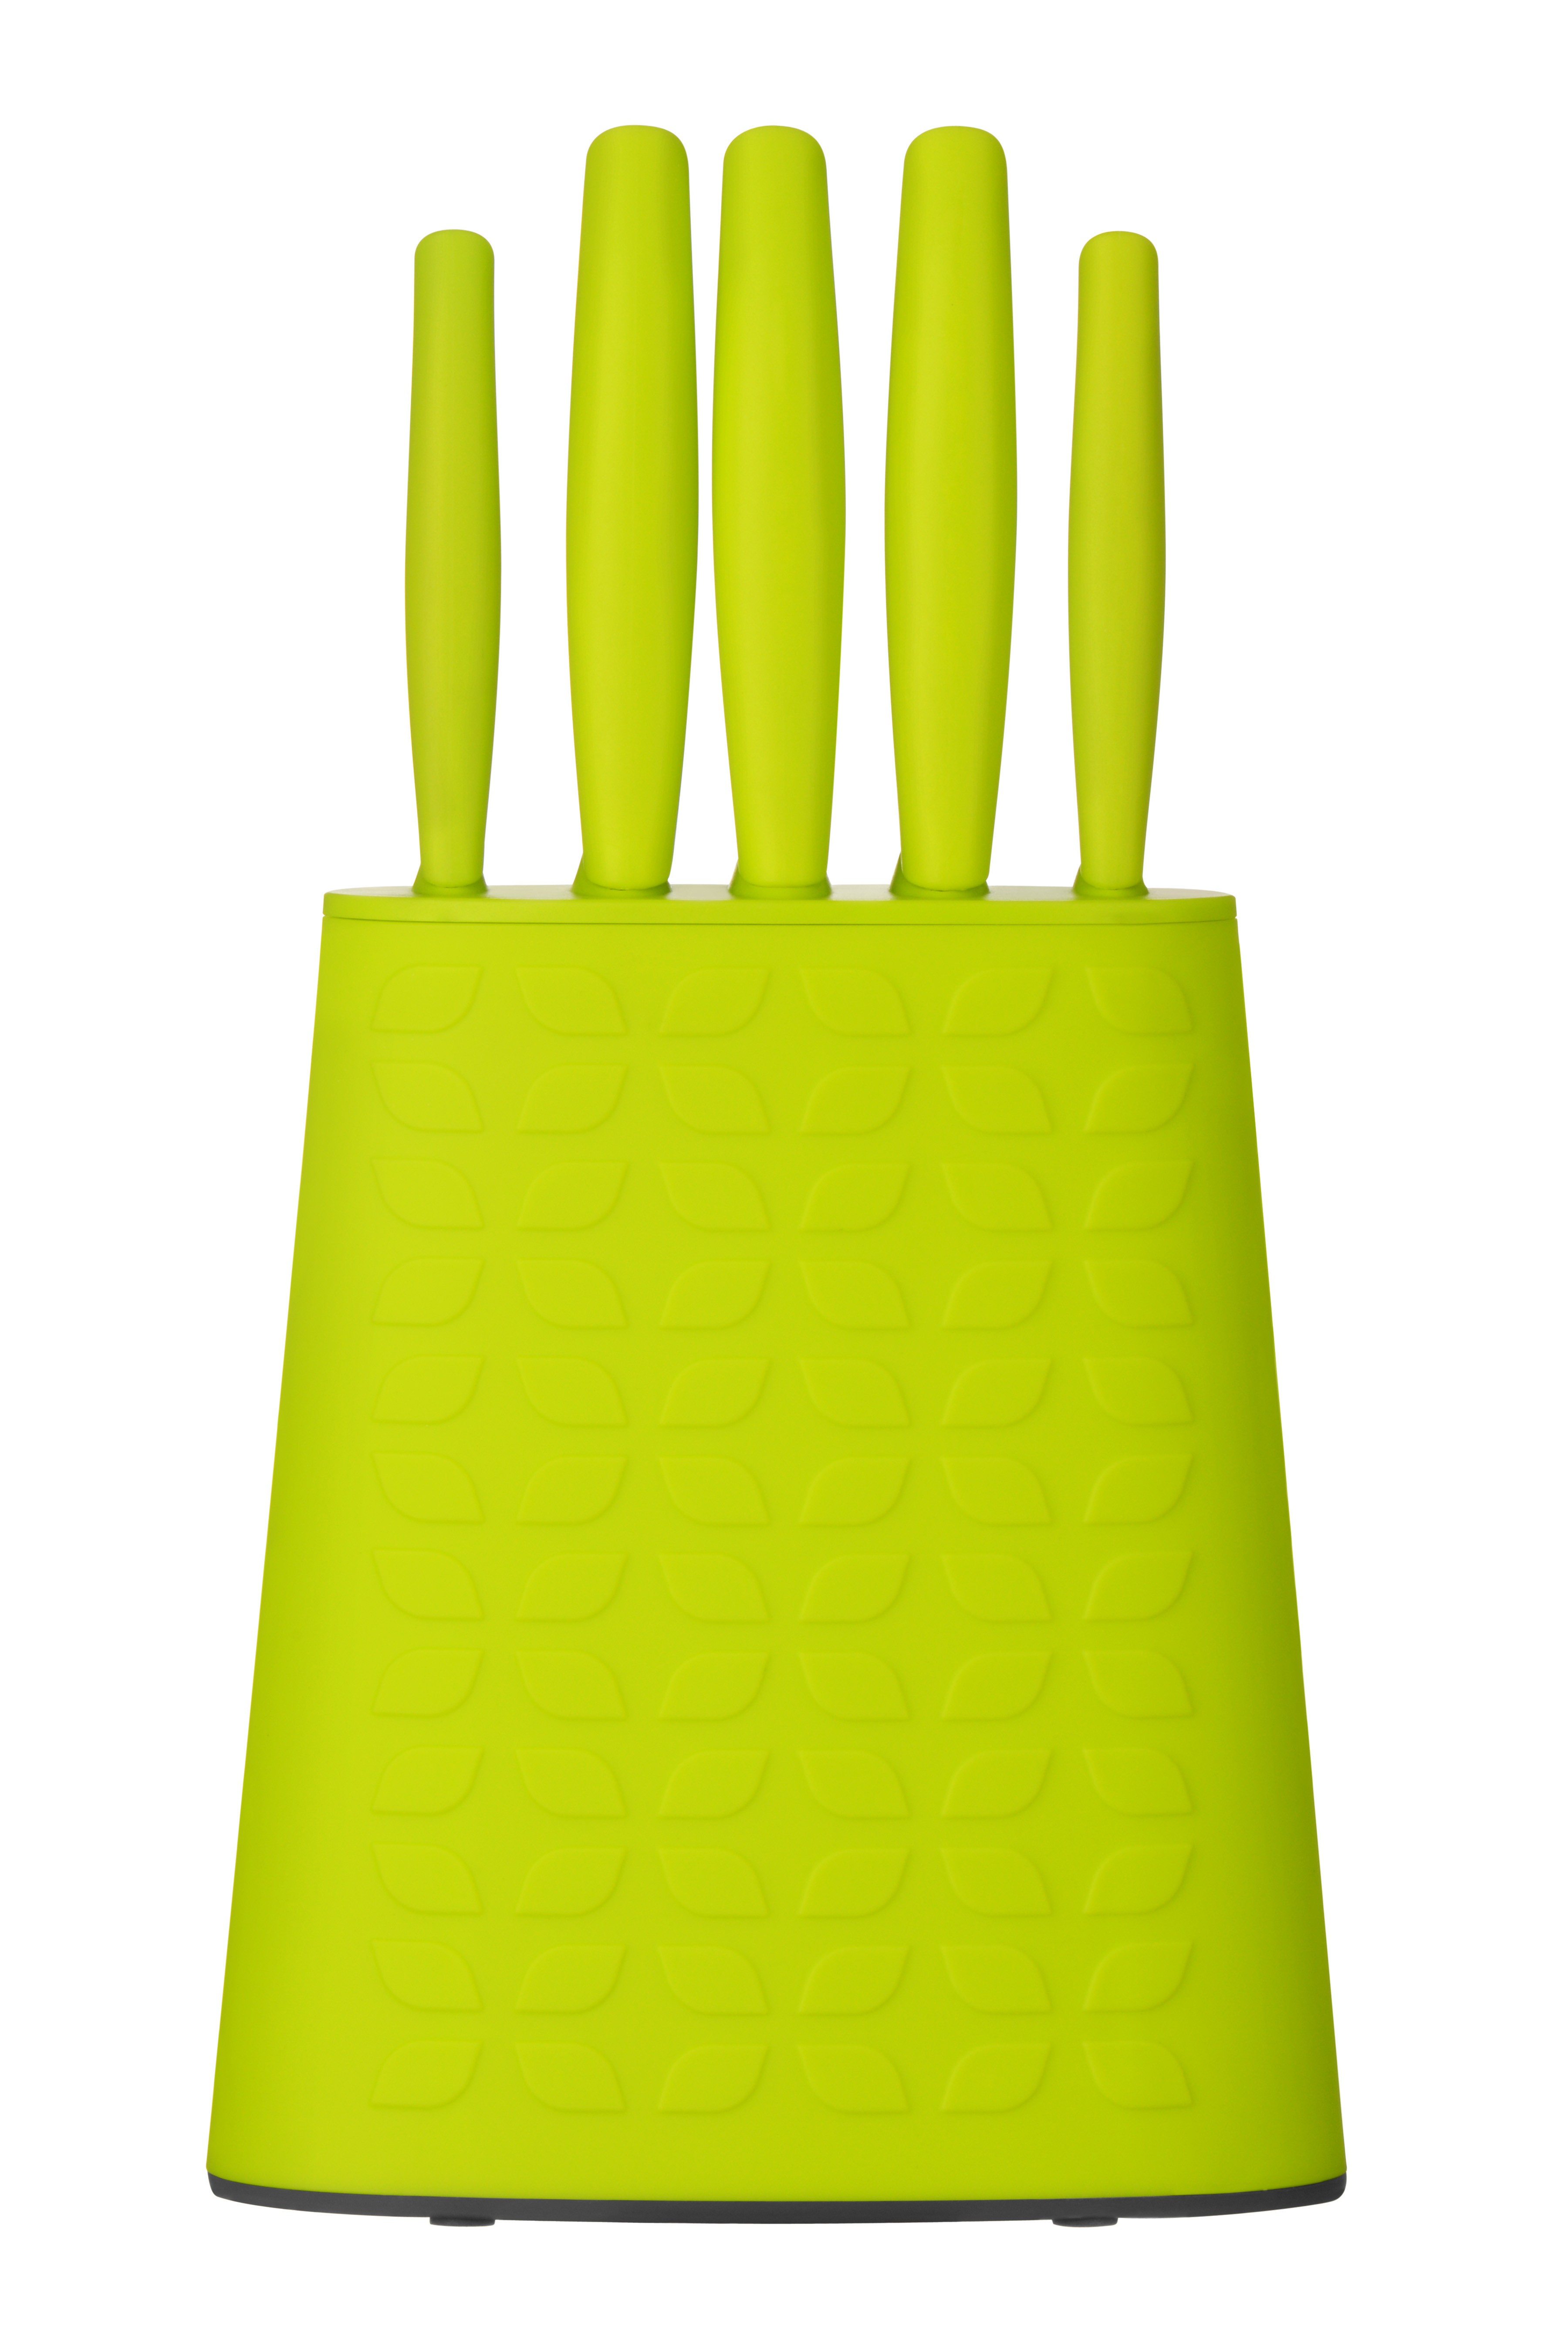 5pc Knife Block Set Lime Green PP Handle/Block Stainless Steel